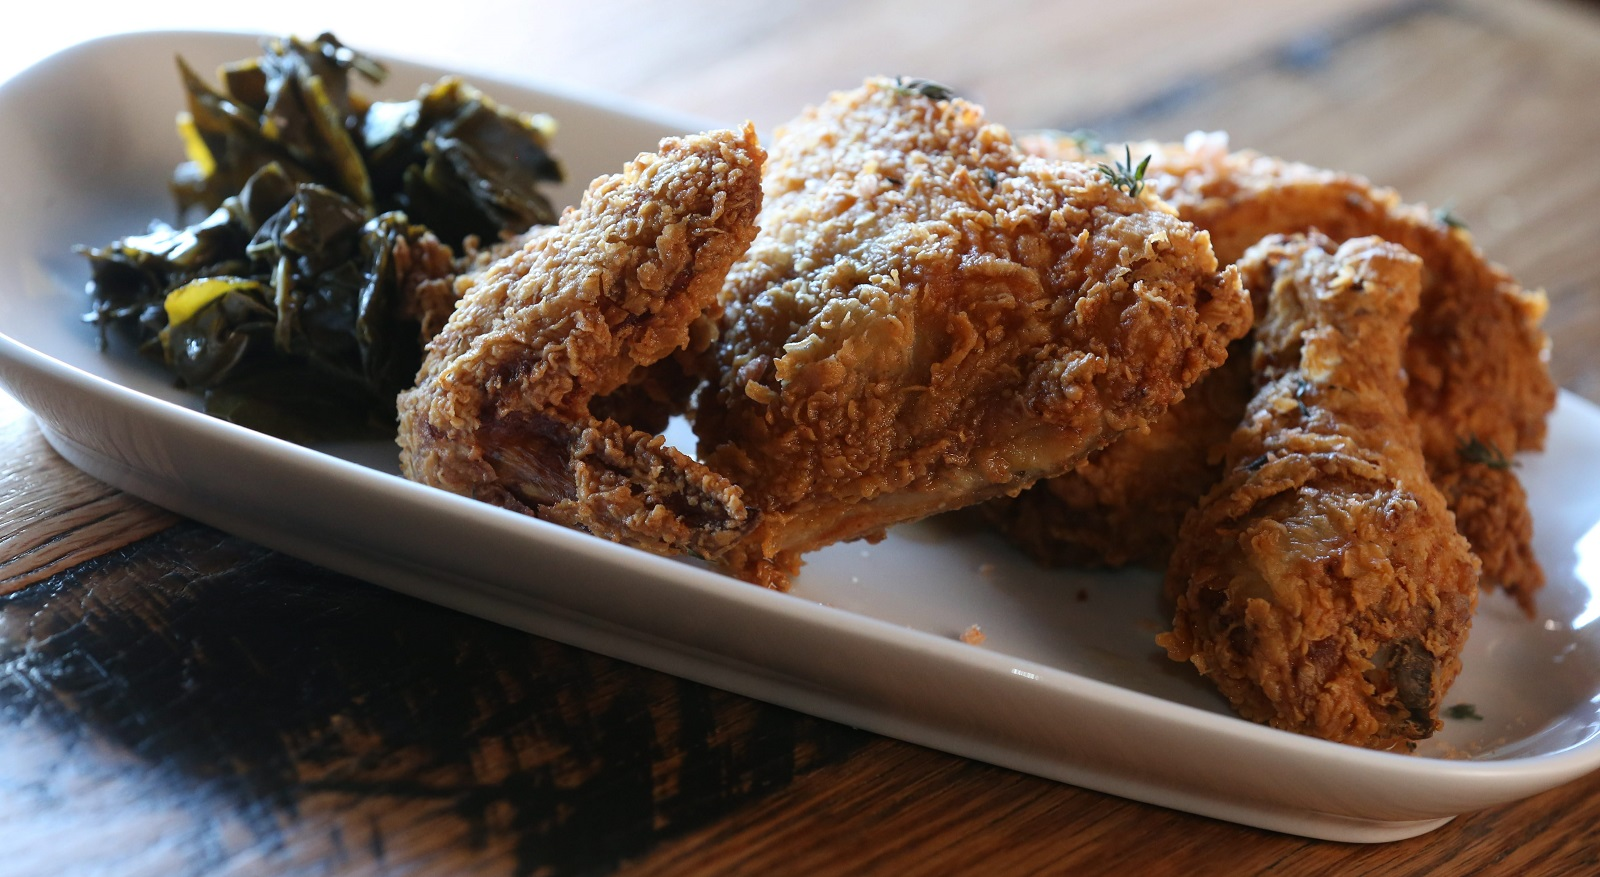 Toutant's buttermilk fried half-chicken comes with collard greens with cayenne sea salt. (Sharon Cantillon/Buffalo News file photoh)